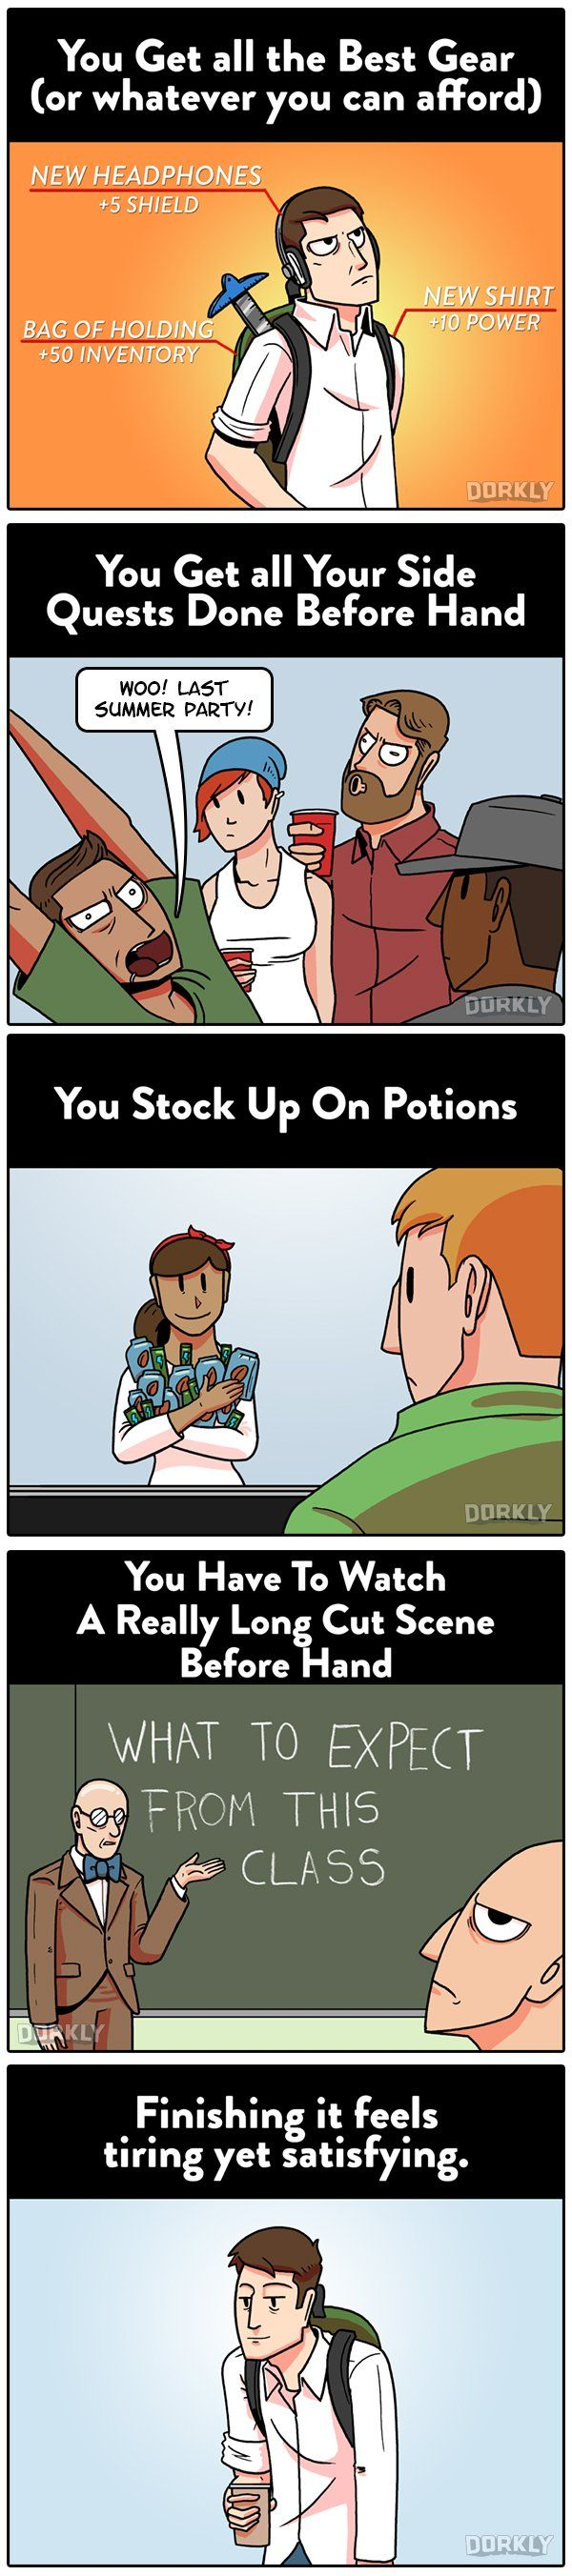 Dorkly Comic: Why Preparing for School is Like Preparing for a Boss Battle